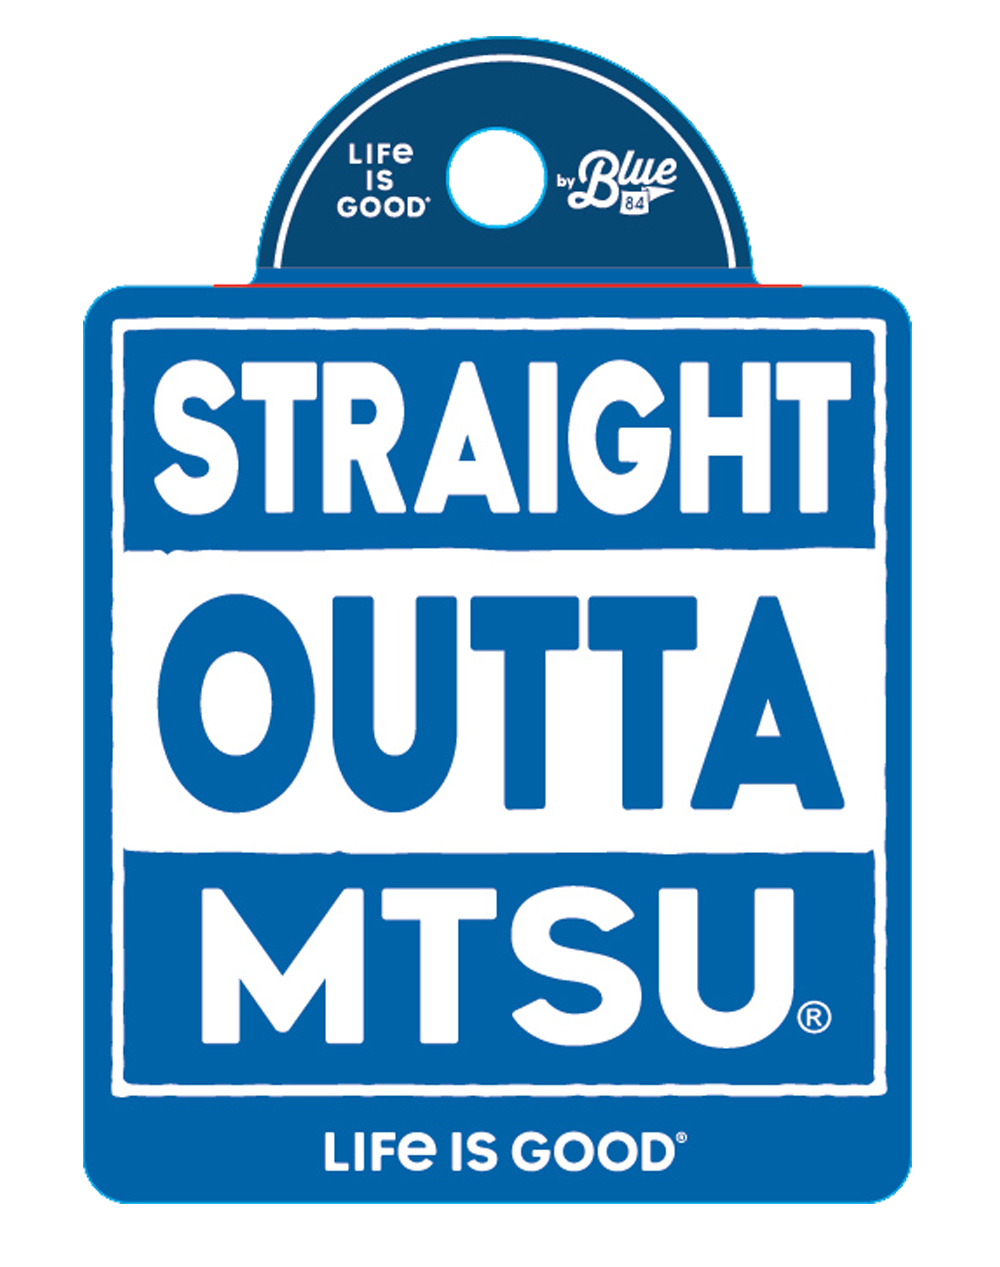 Straight Outta MTSU Life is Good® Sticker